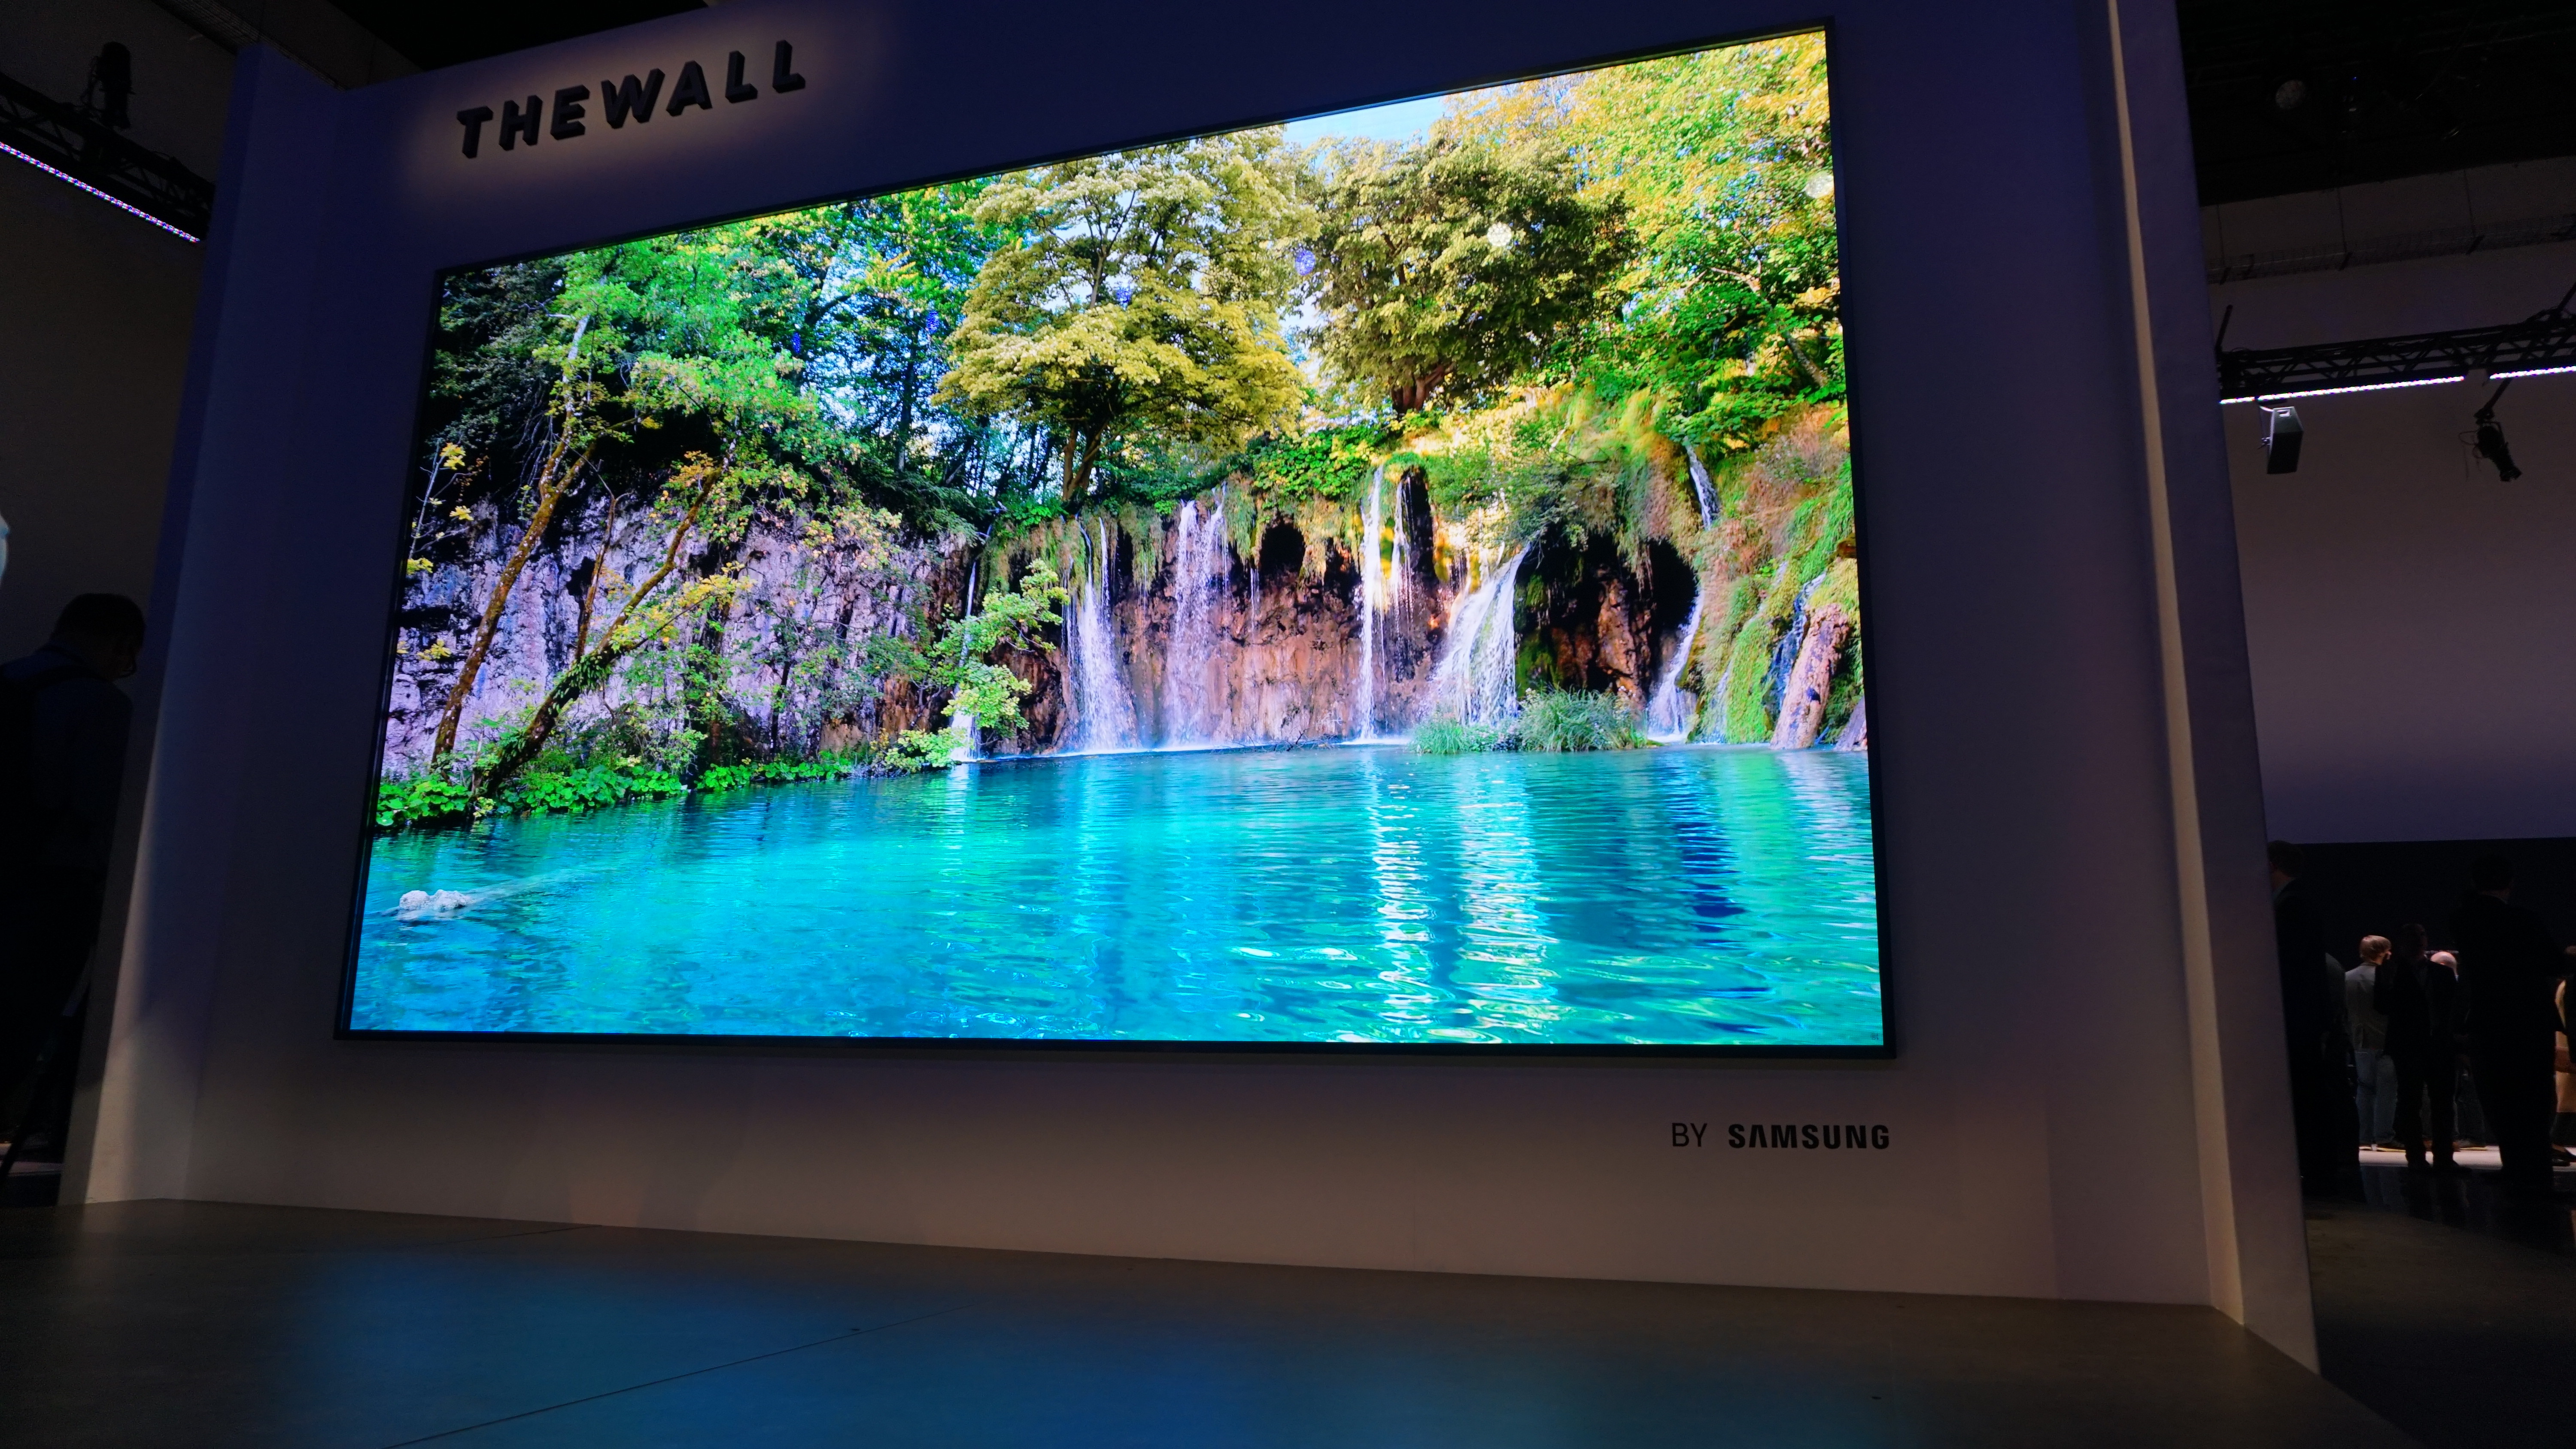 Samsung patents 'The Wall Luxury' TV – more big screen excess on the